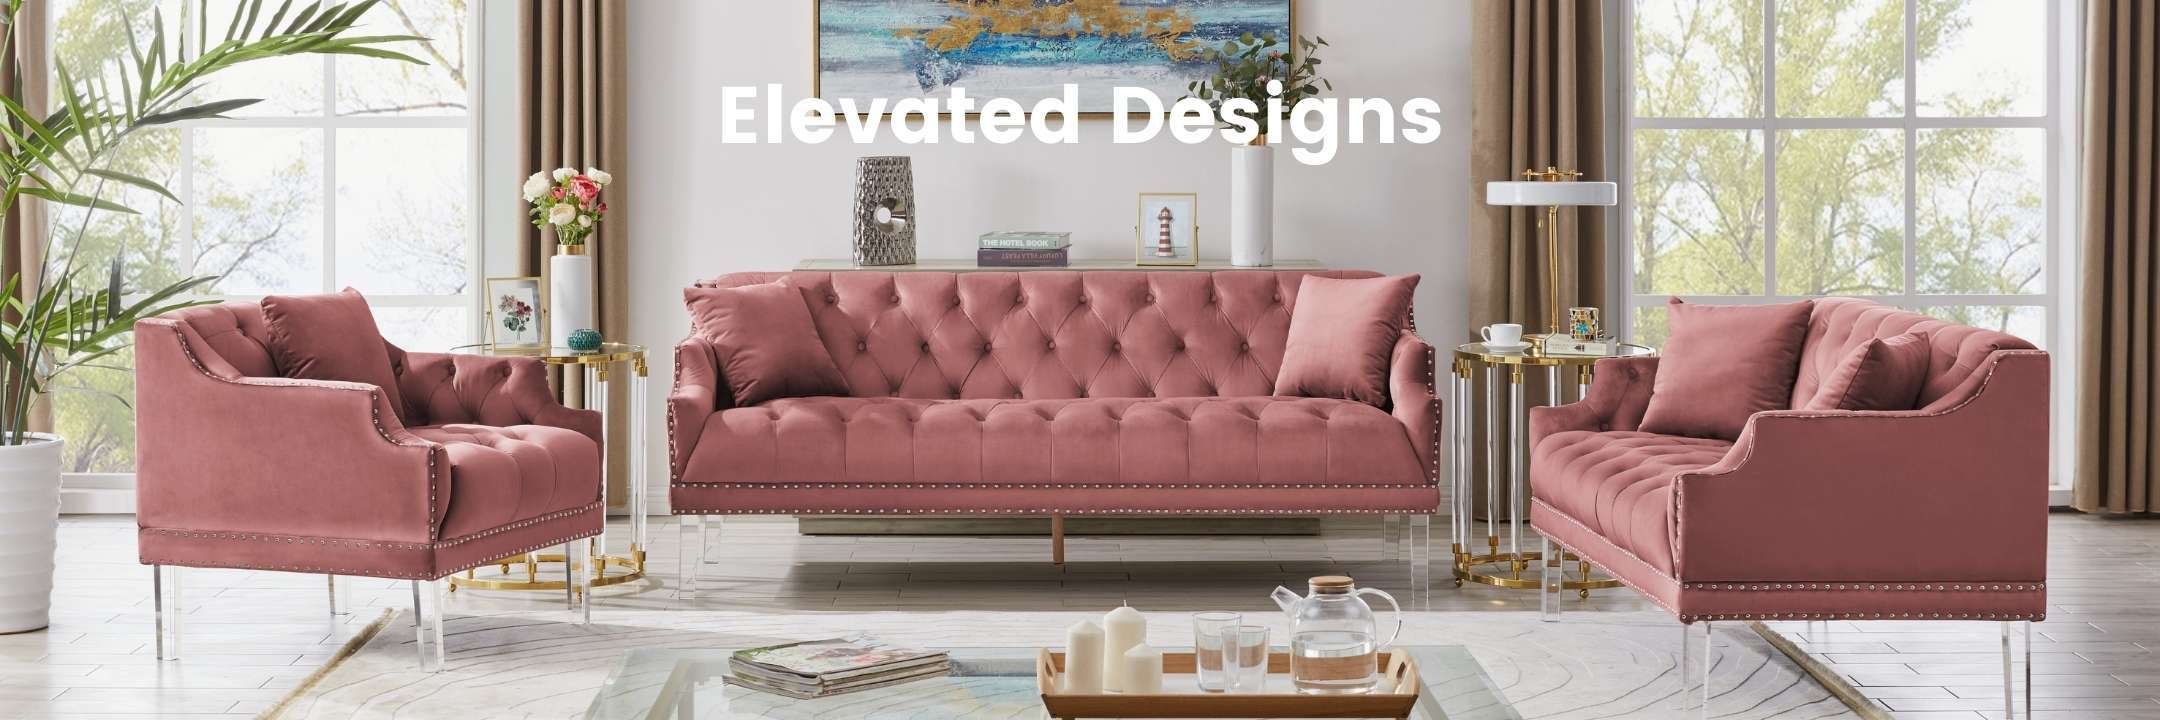 A living space with a blush Iconic Home Elsa velvet sofa, loveseat and club chair